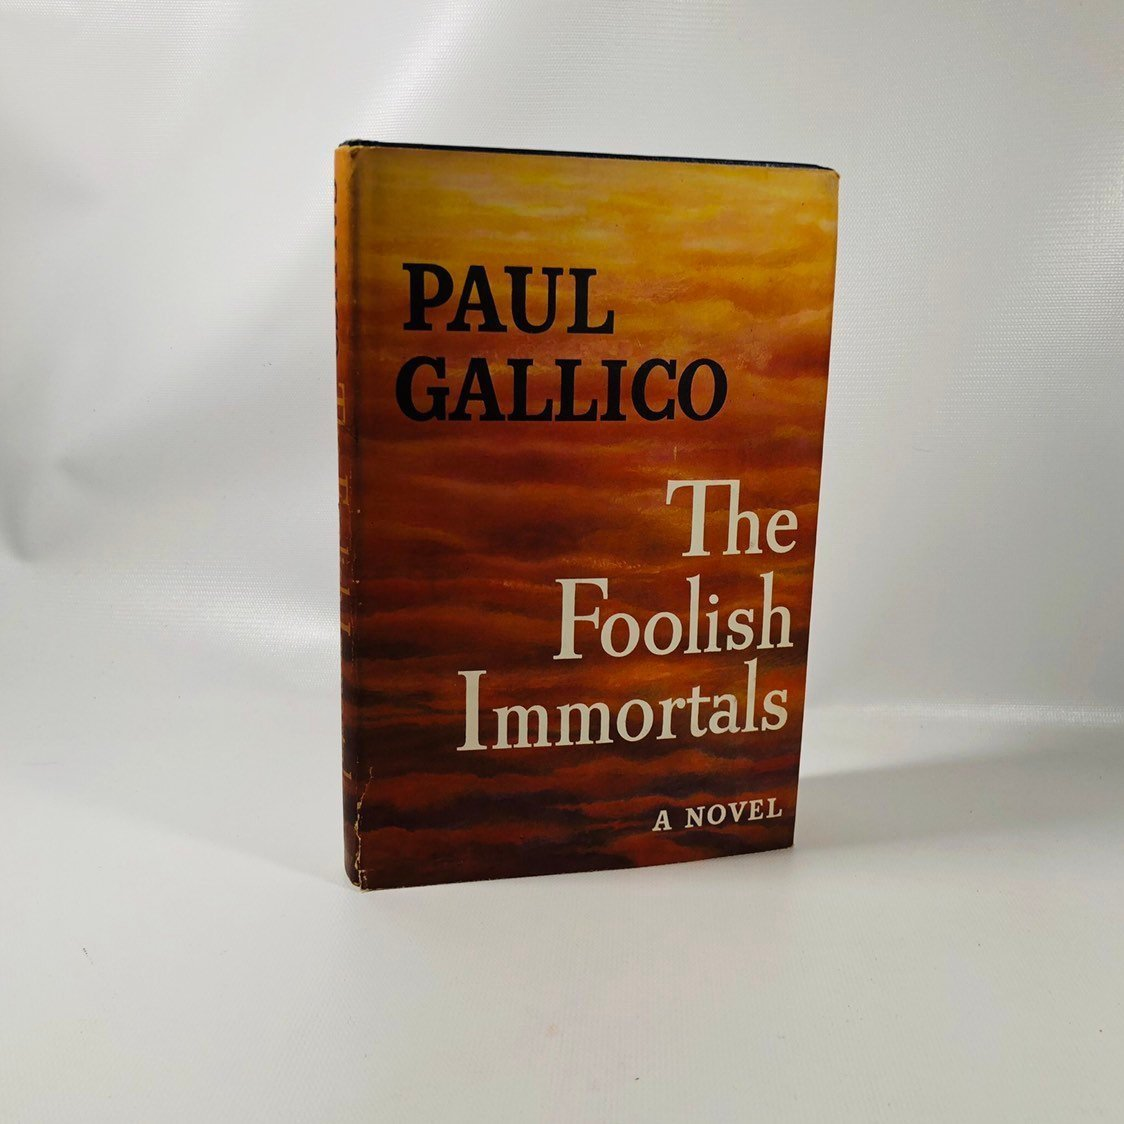 The Foolish Immortals by Paul Gallico 1953 A Vintage Novel